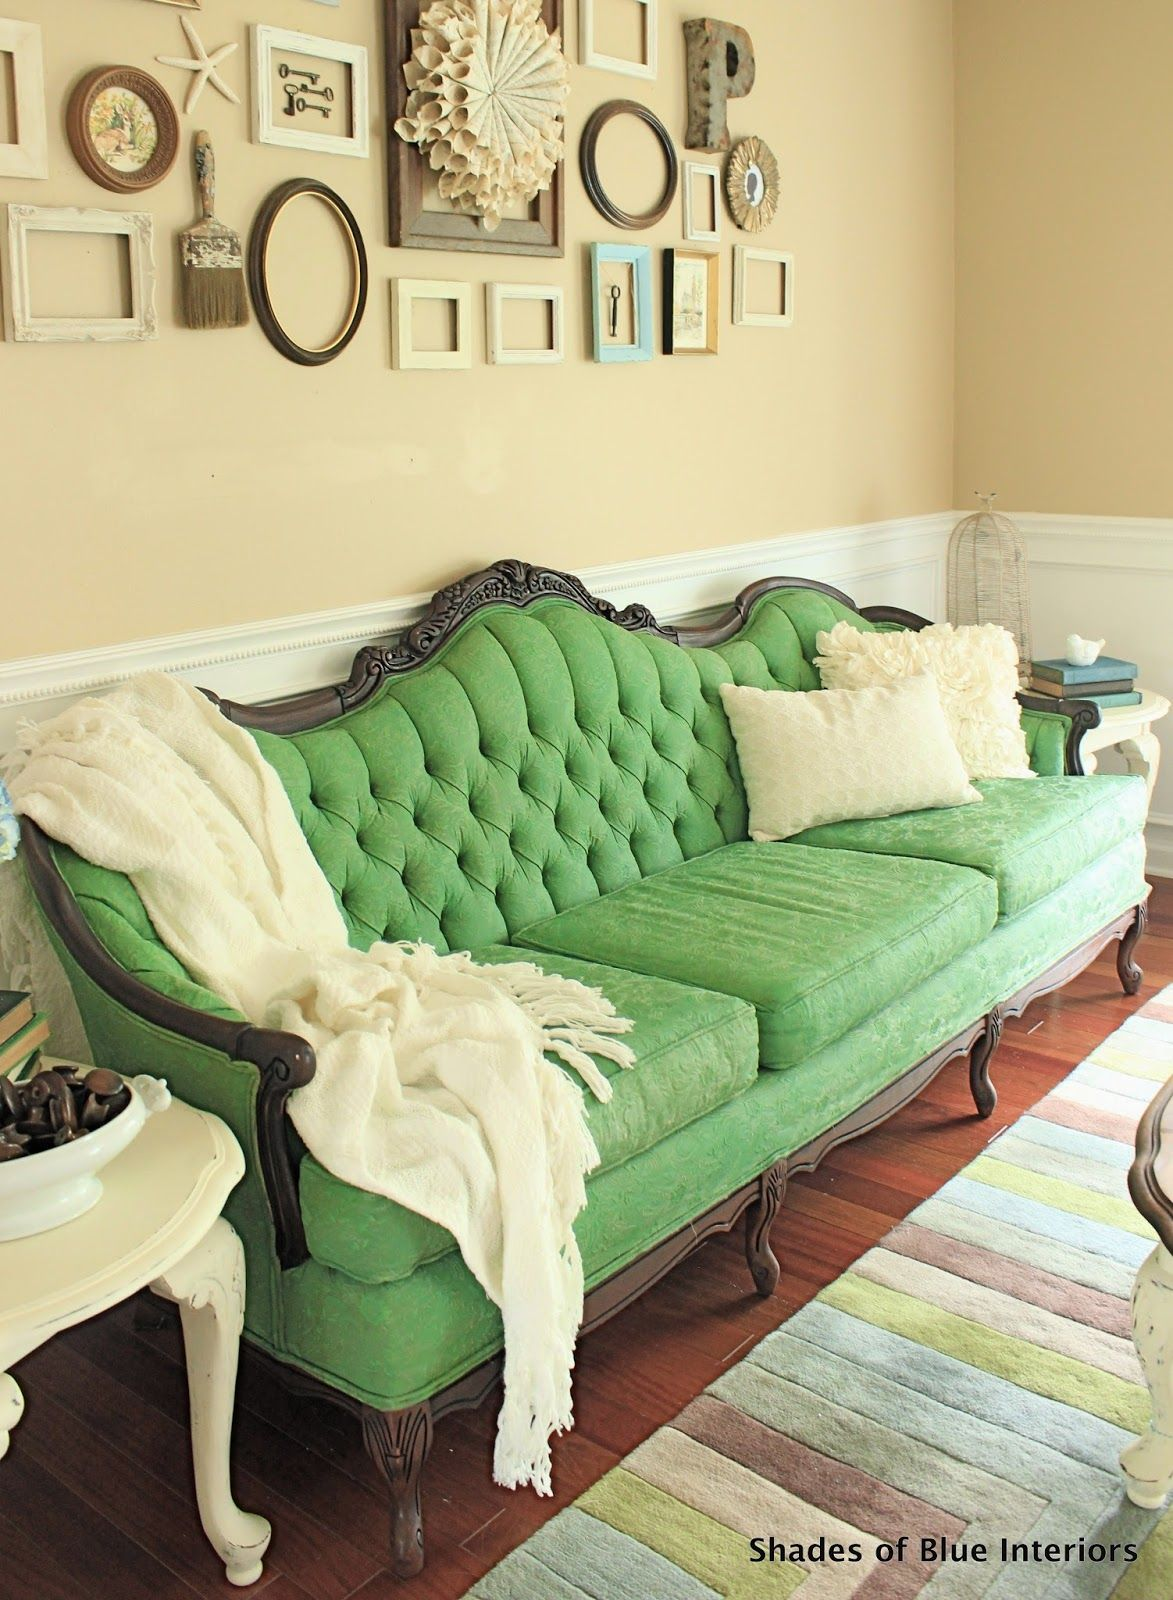 Shades of blue interiors makeover monday green painted sofa